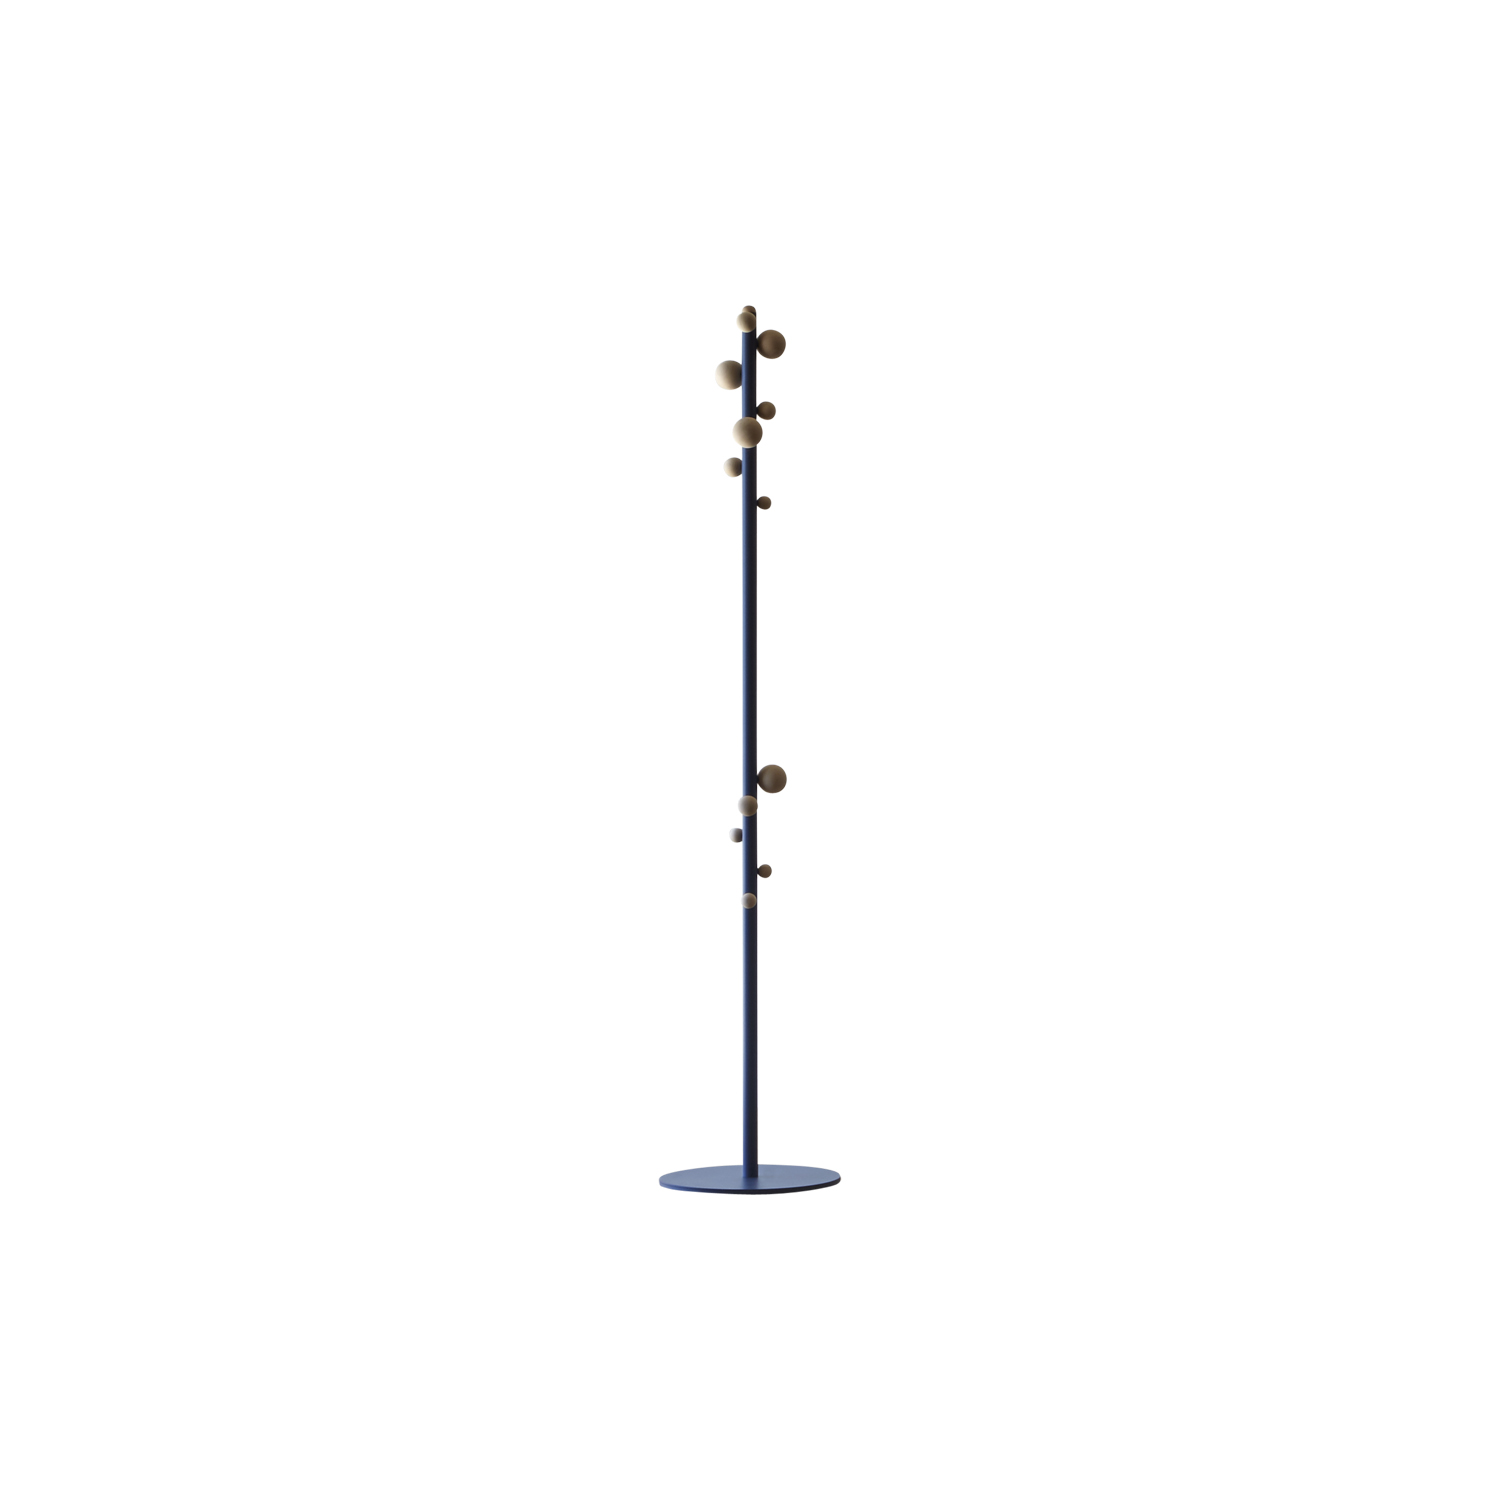 Bubble Coat Stand - Small beech wood balls seem to appear from nowhere along a coloured stem, lending the traditional coat stand a vibrant personality. A complementary furnishing item that lives up to your challenges.